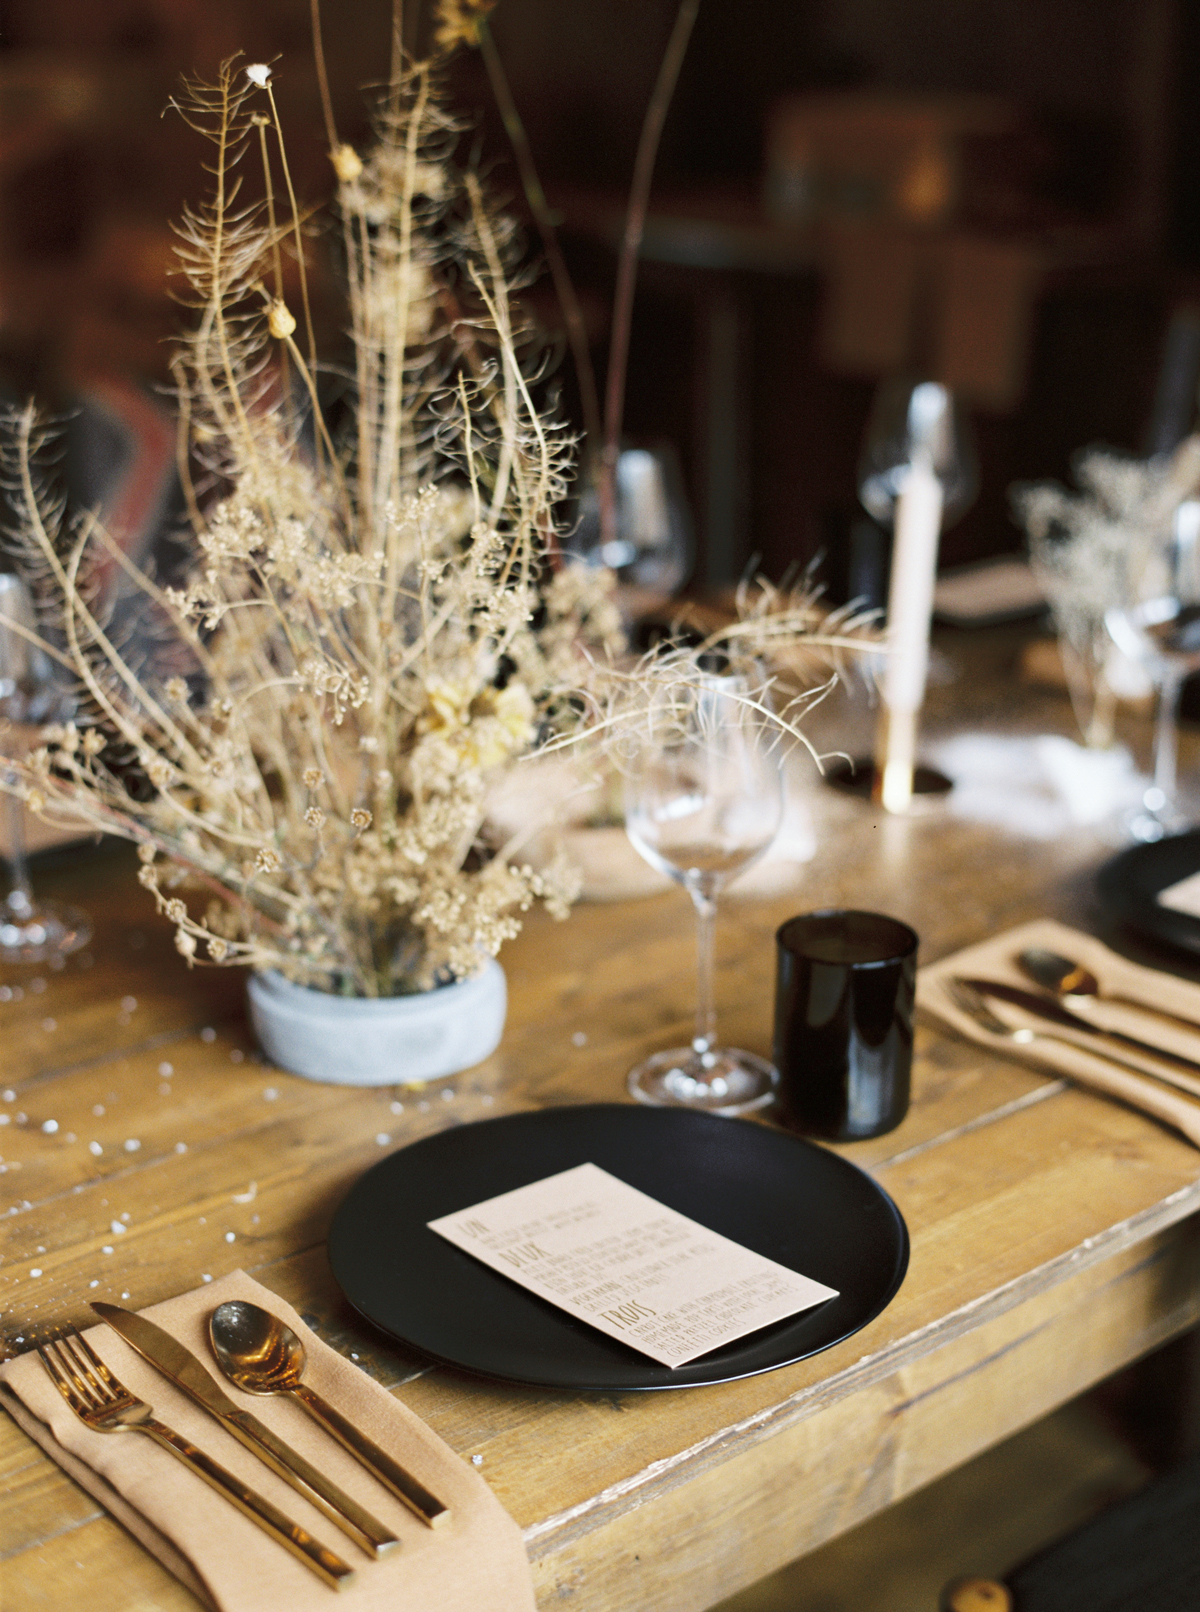 wedding reception table setup with black dishes and dried flowers